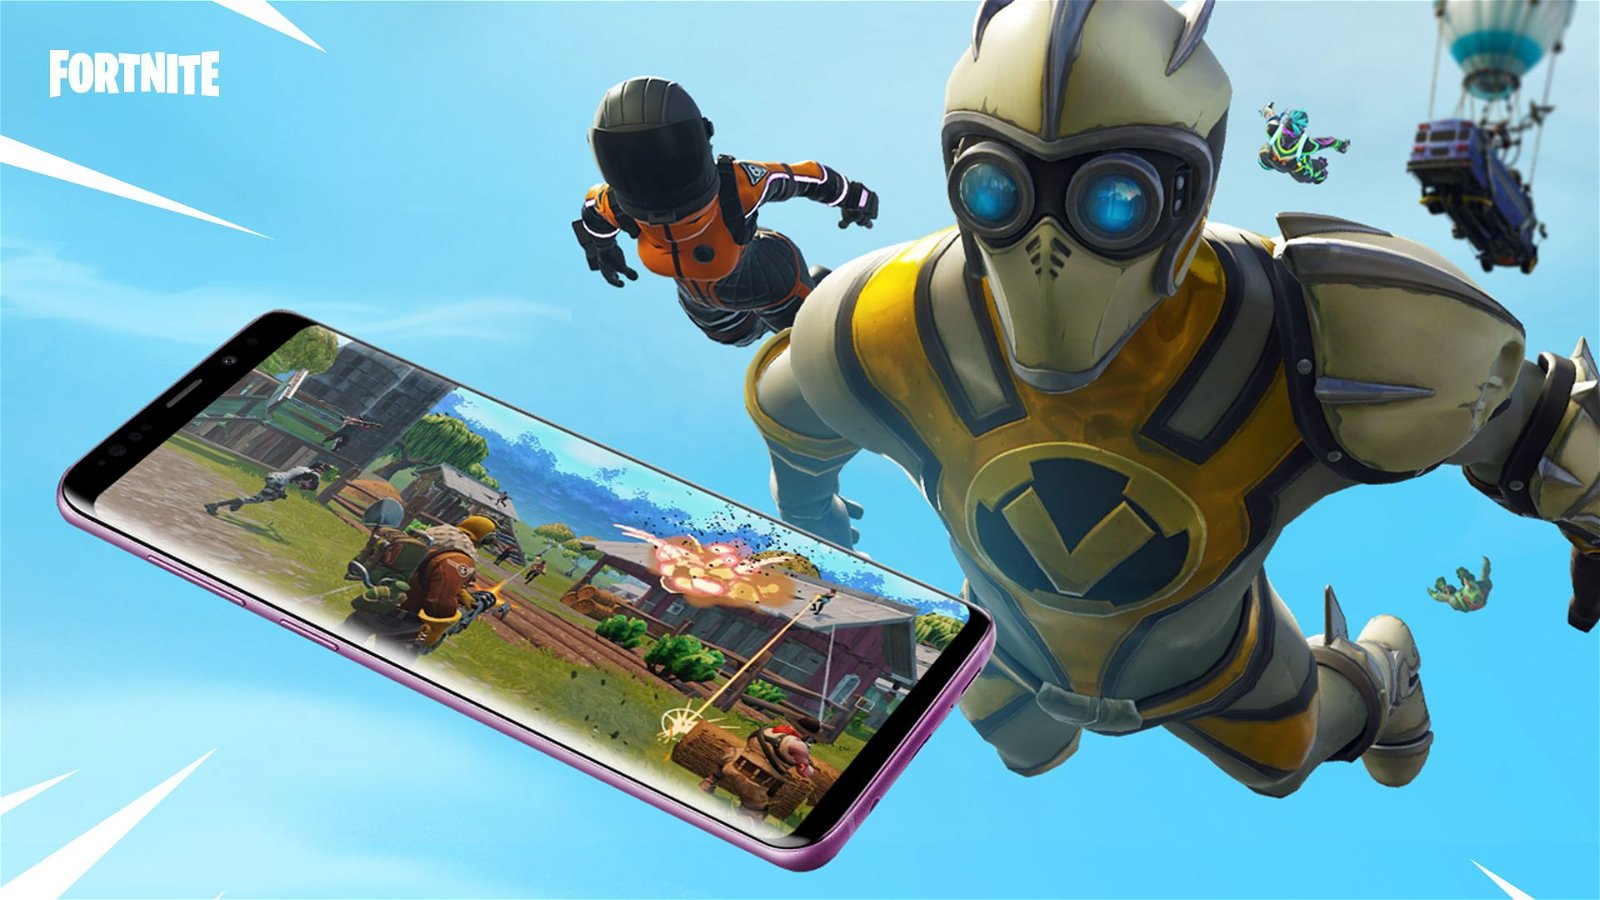 HOW TO: Install Fortnite Android Beta Right Now - Fortnite